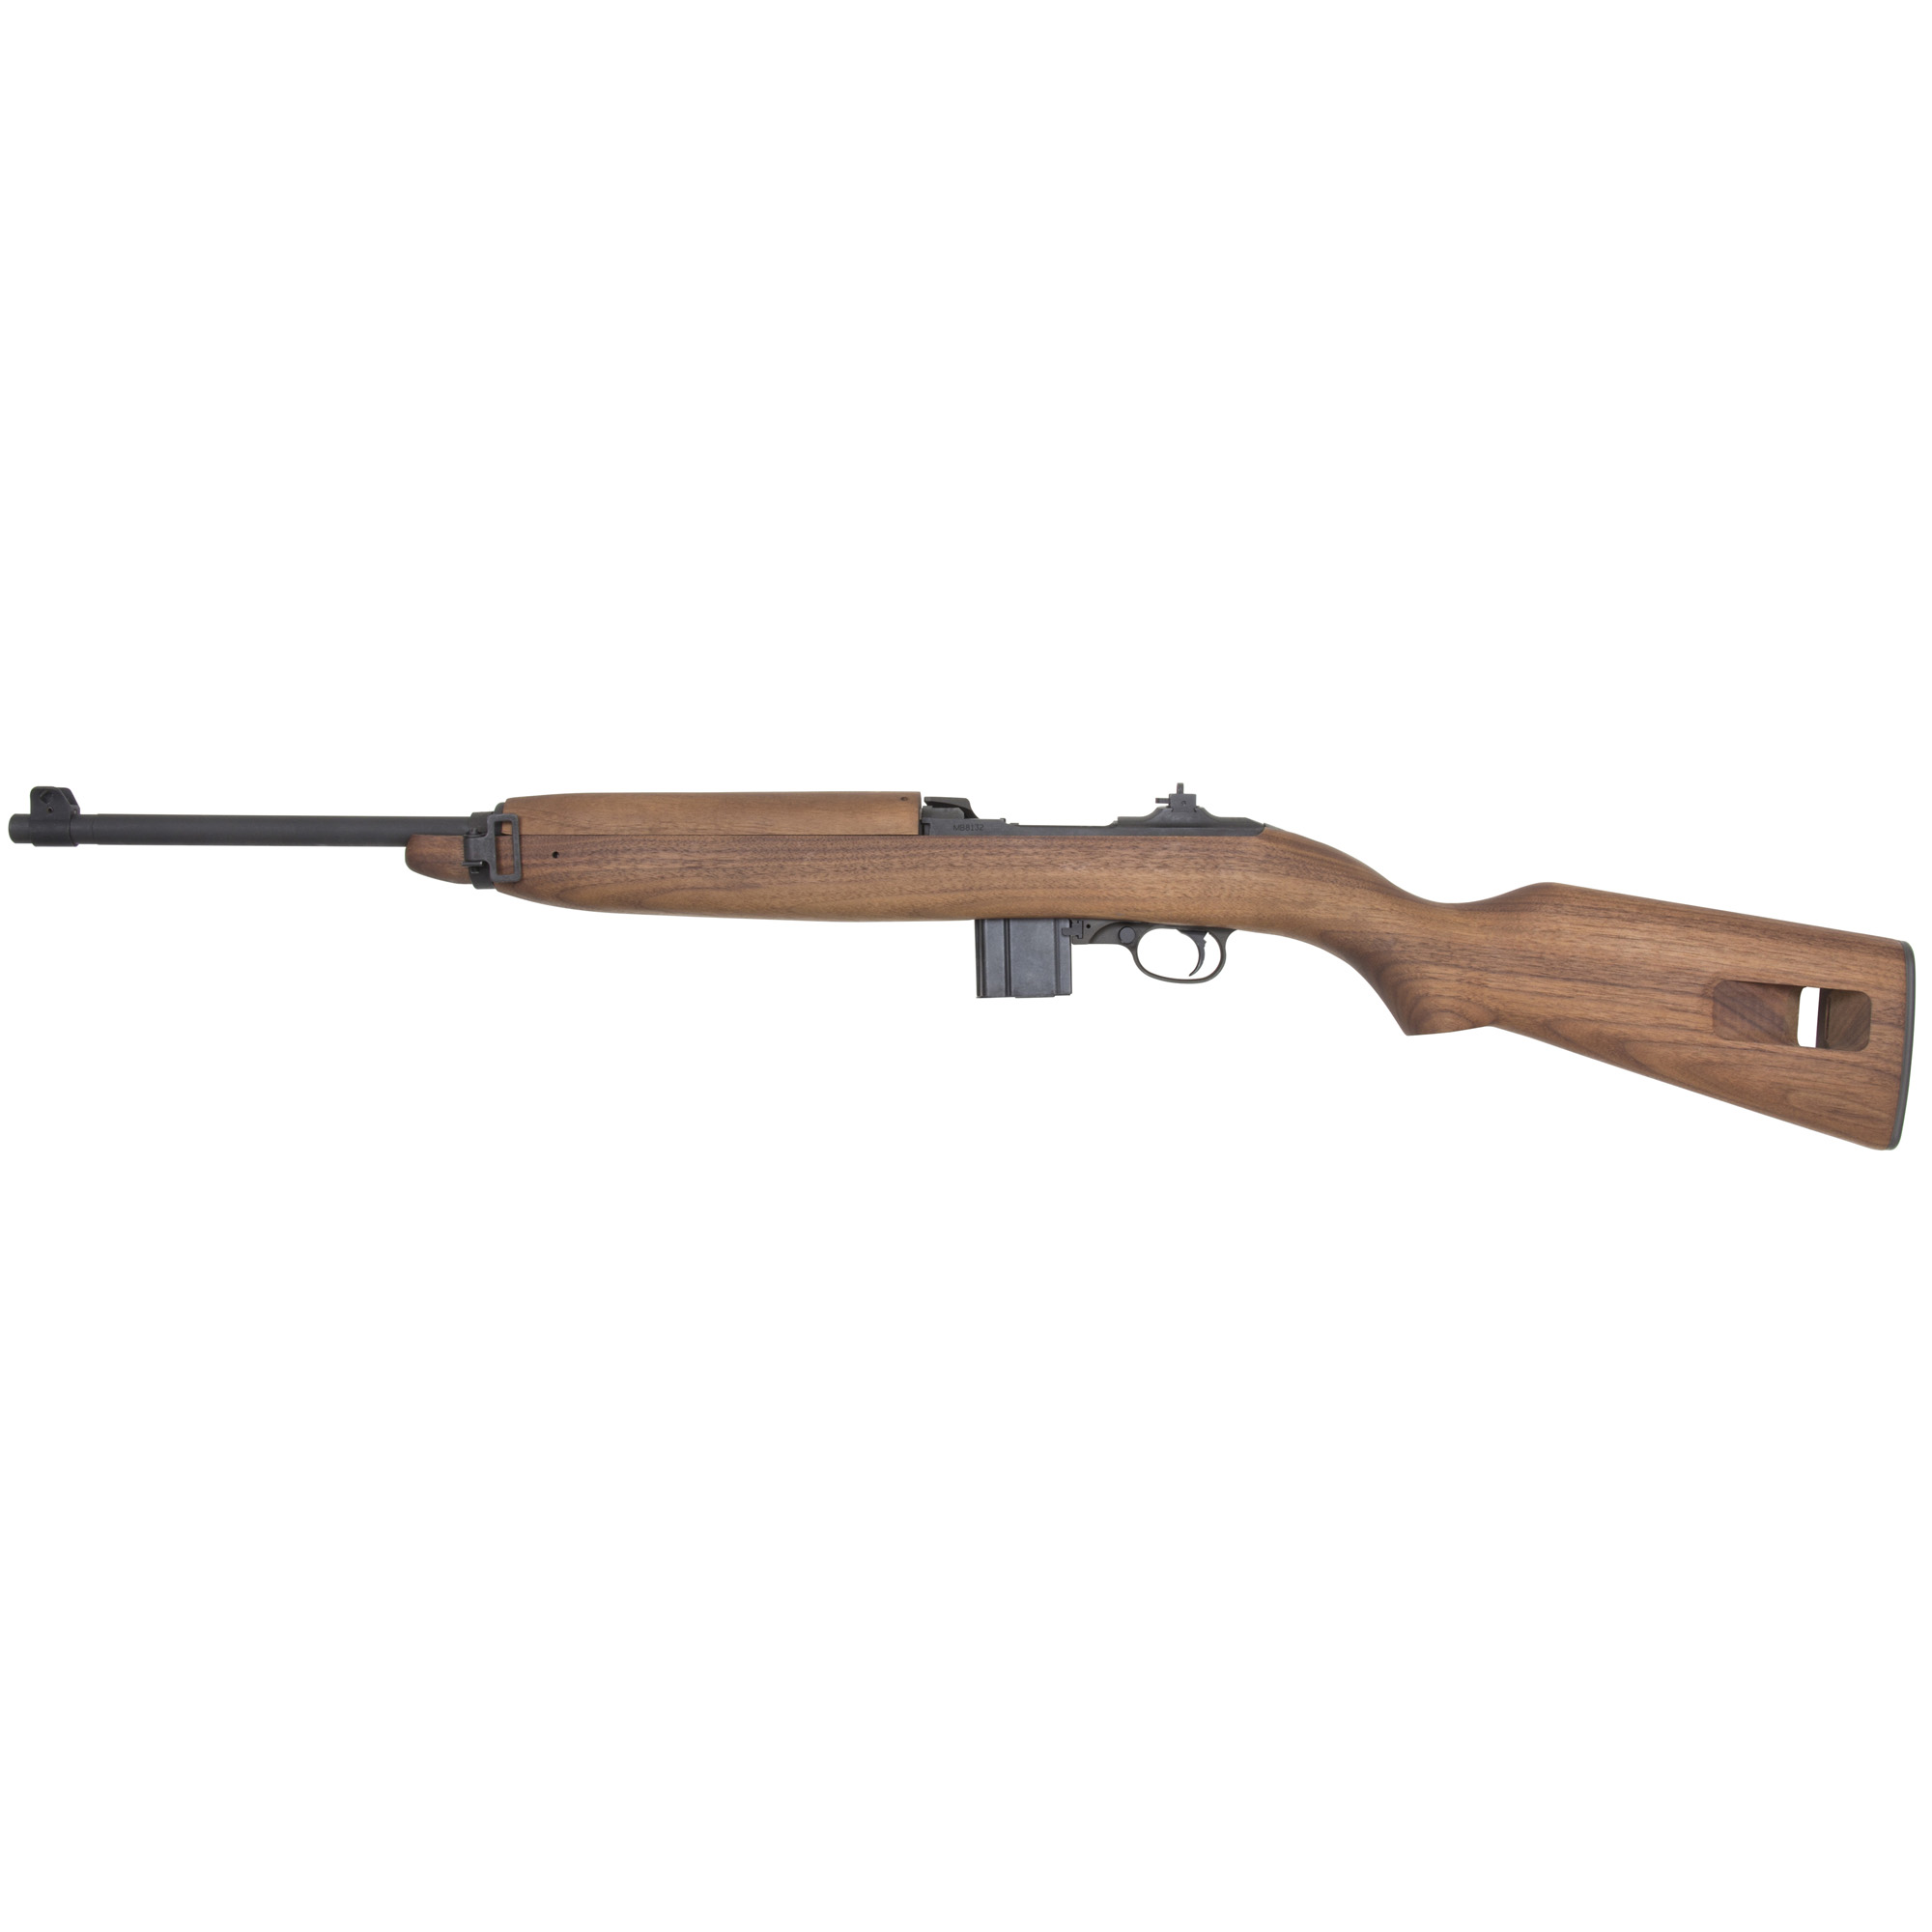 "Each Auto-Ordnance M1 Carbine is a faithful reproduction of the famous military rifles that served American forces beginning in World War II. Each rifle has a Parkerized finish"" American Walnut stock"" 10 round magazine"" 18"" barrel and flip-style rear sight."